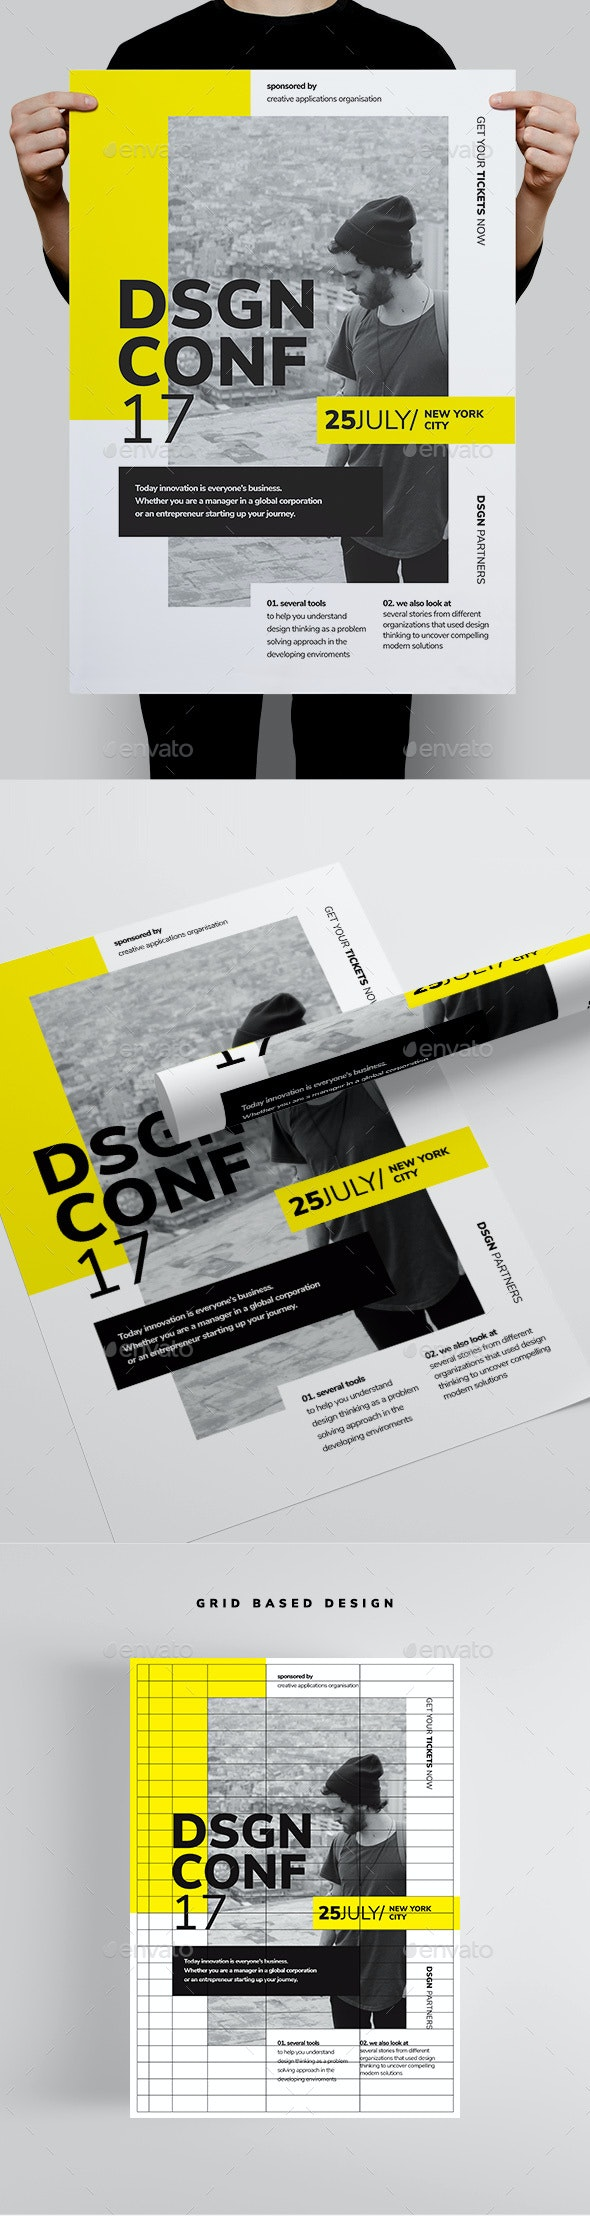 DSGN Series 1 Poster / Flyer Template - Corporate Flyers